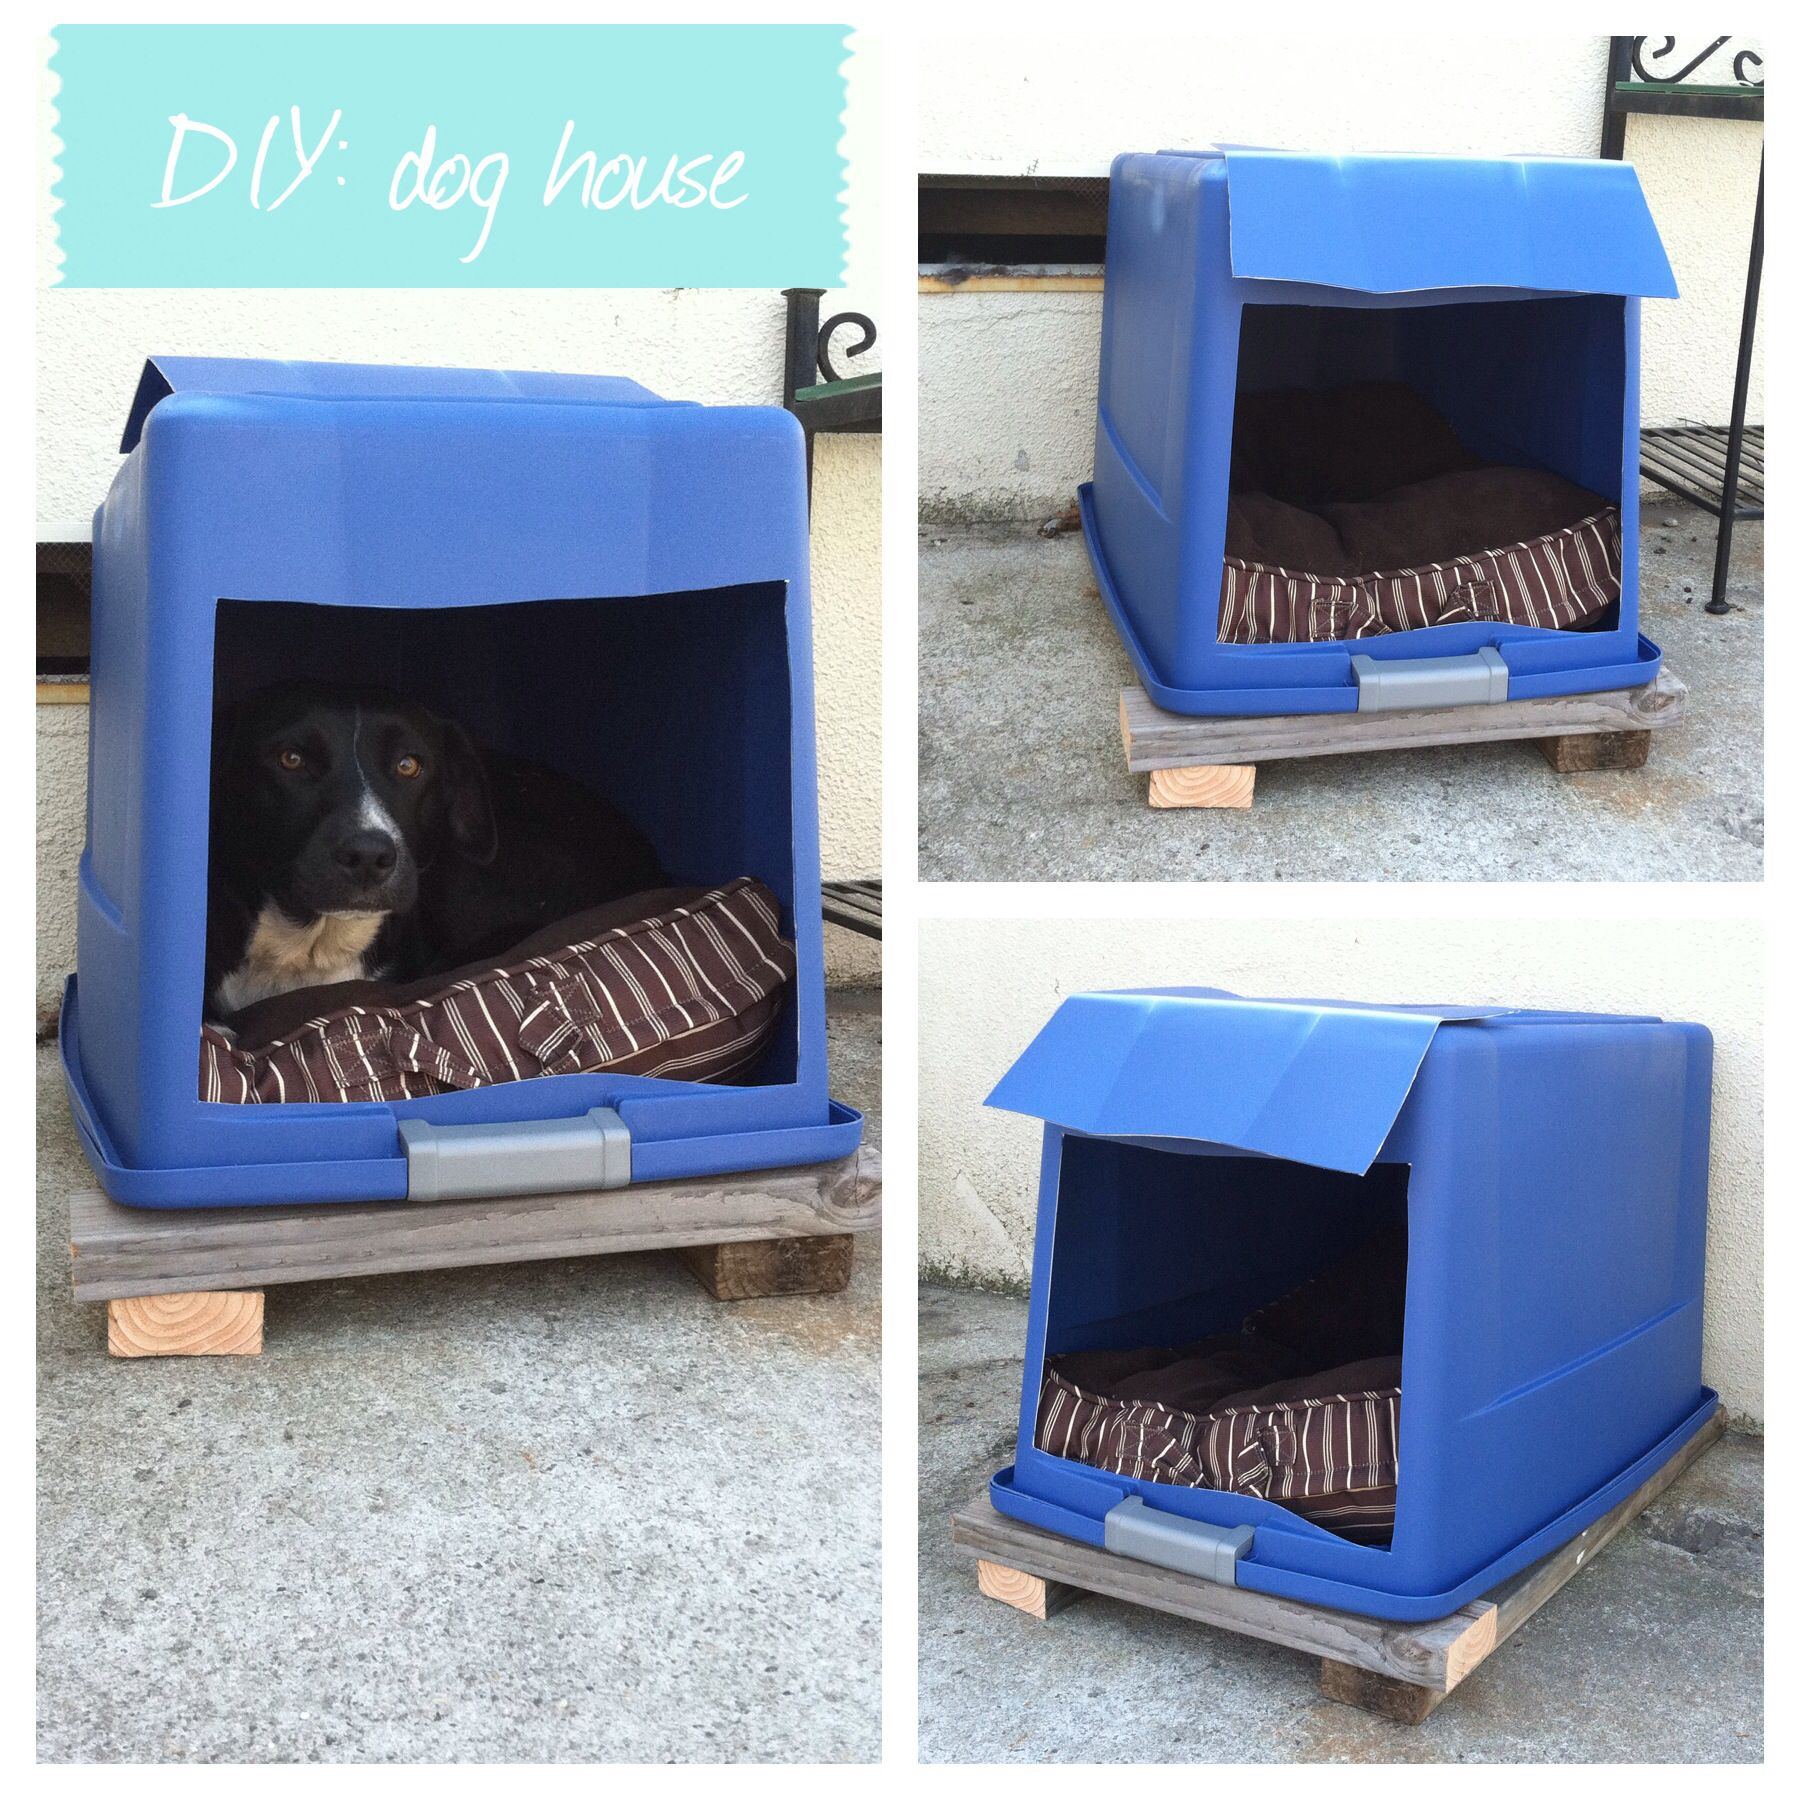 DIY Dog House Plastic Bin With Lid Attached Cut A Hole In The